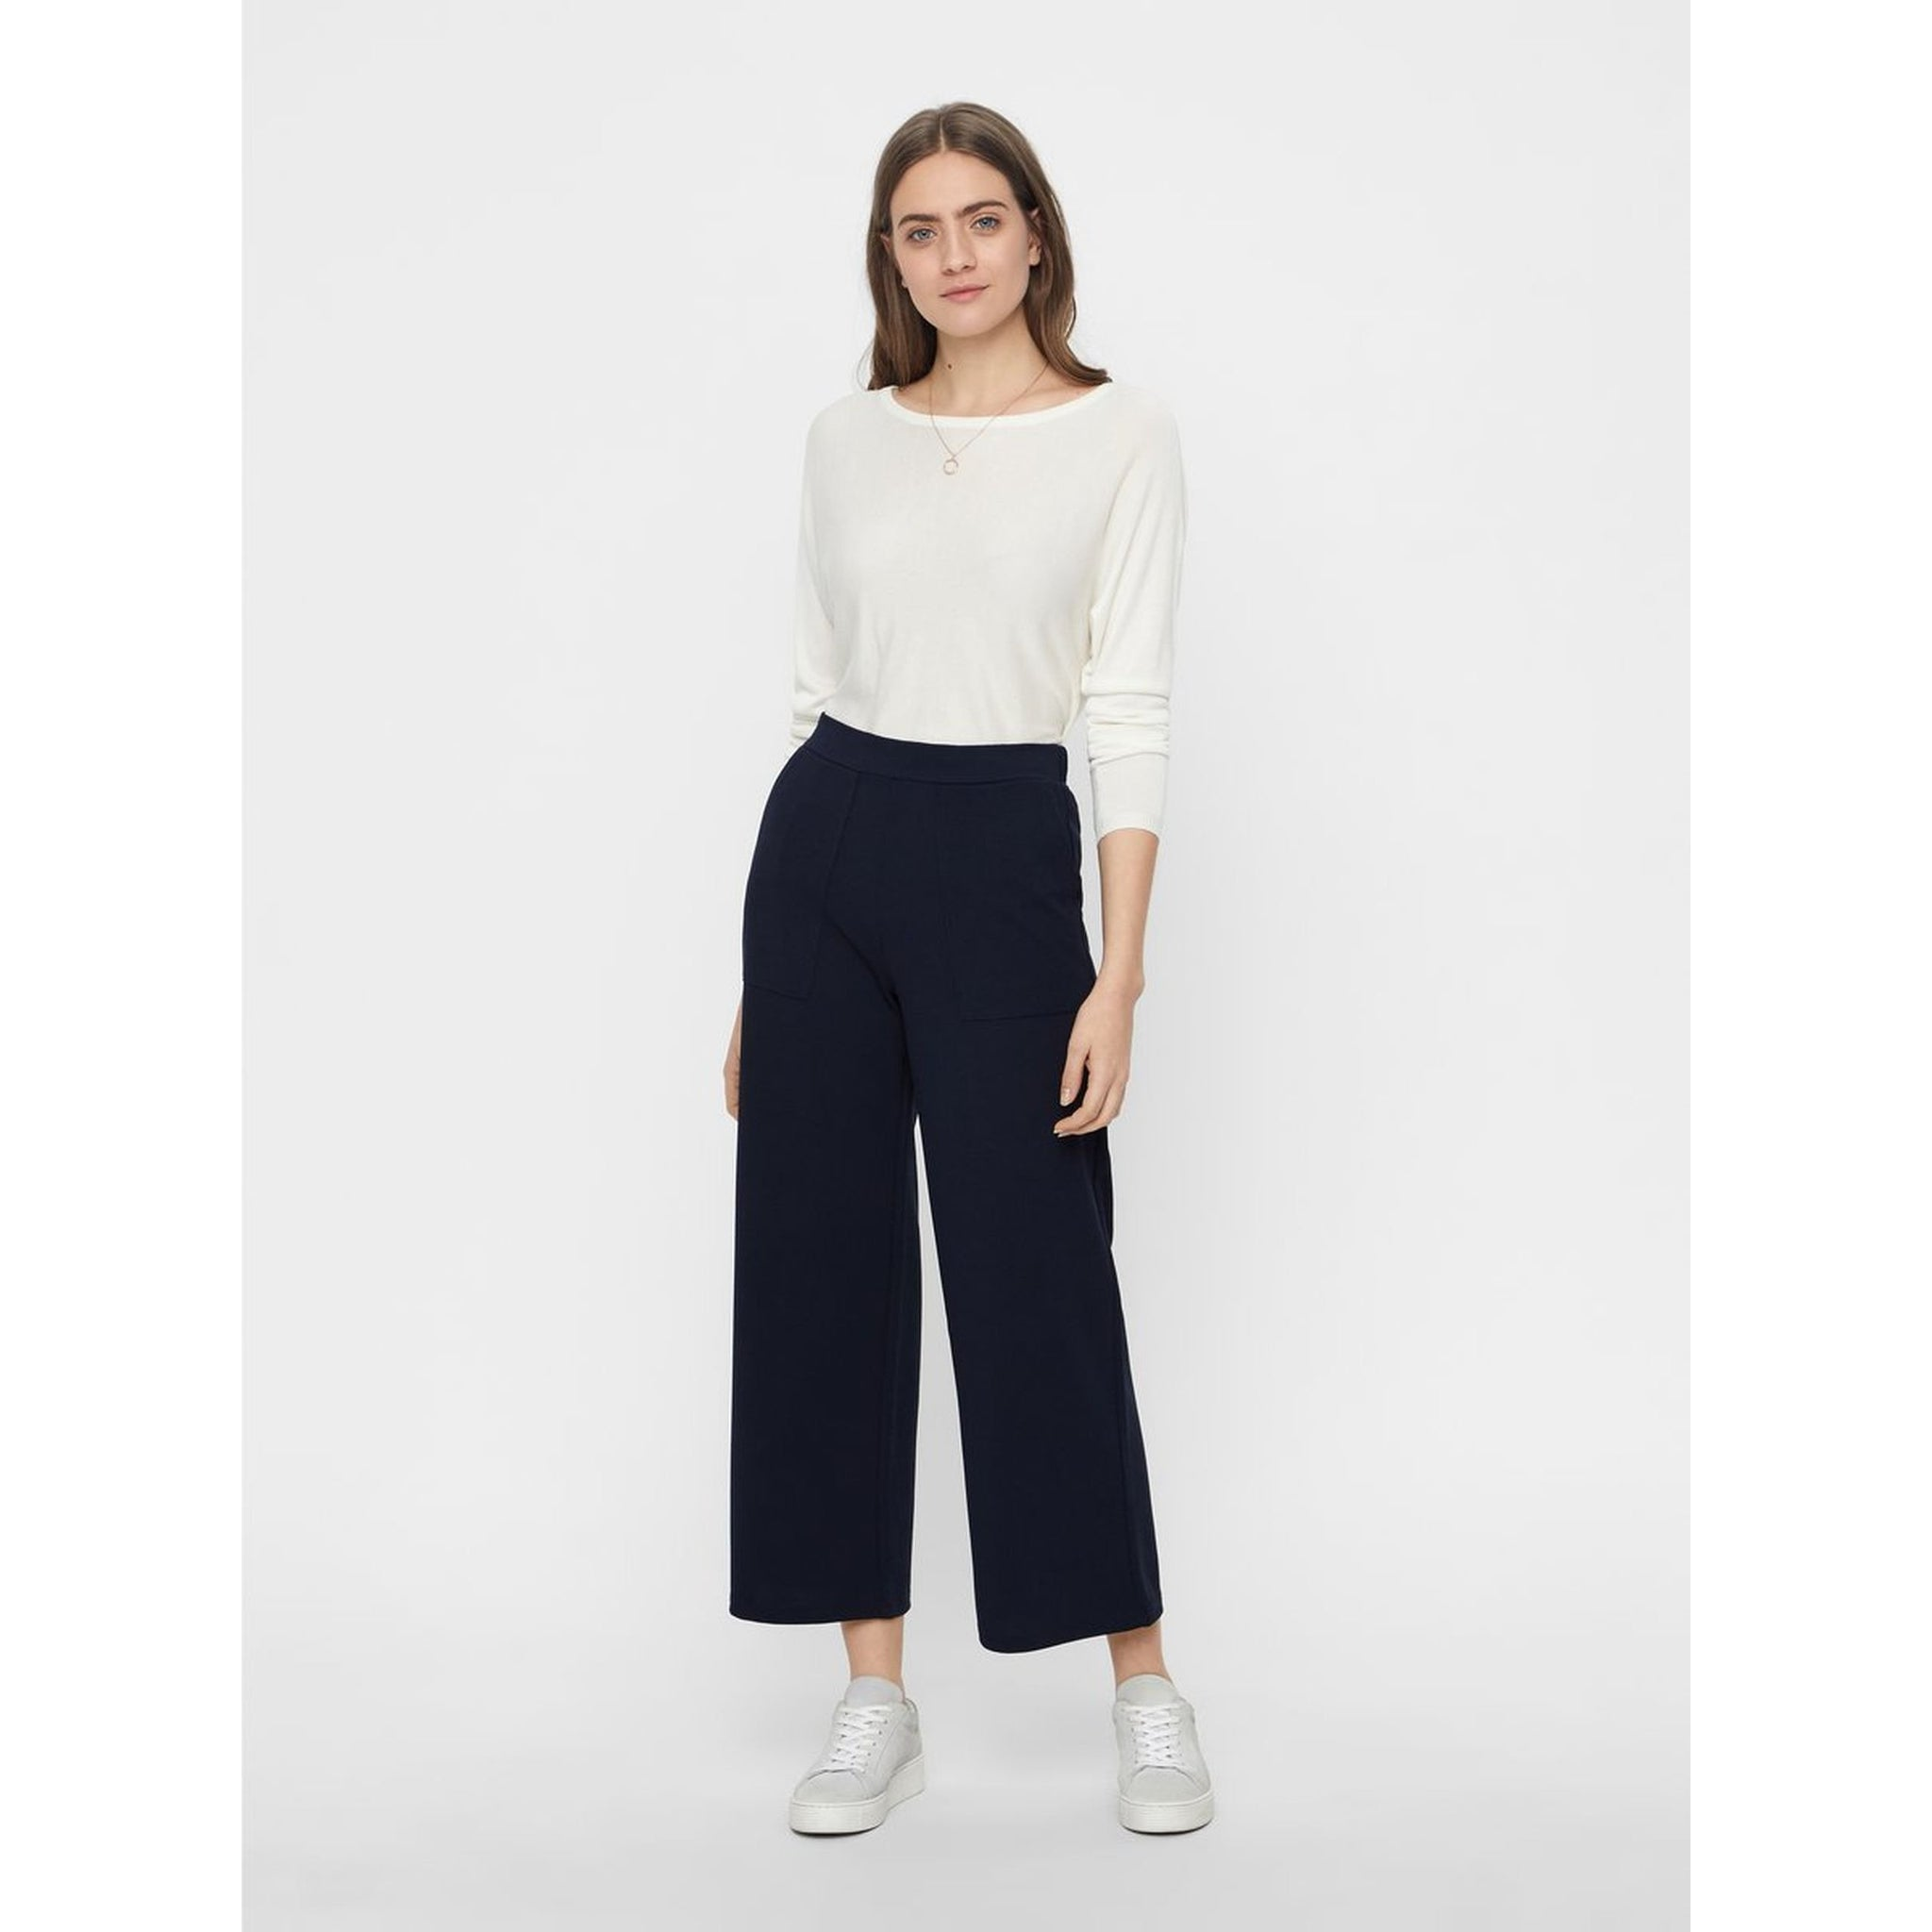 VERO MODA : High Waisted Trousers Navy